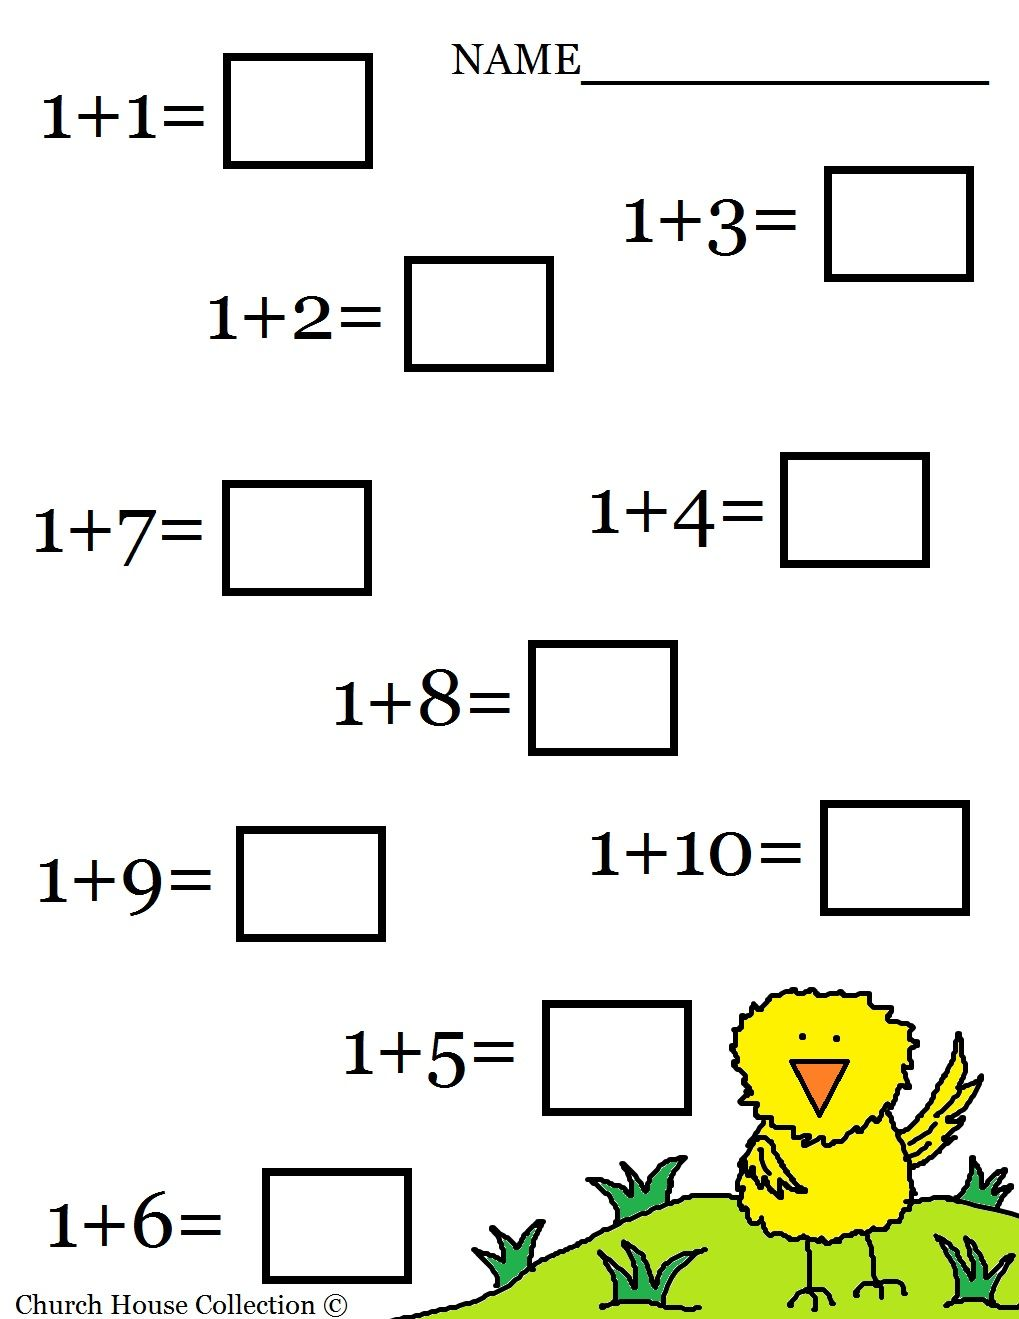 Proatmealus  Wonderful  Images About Worksheets  Math On Pinterest  Math Sheets  With Remarkable  Images About Worksheets  Math On Pinterest  Math Sheets Math Worksheets For Kindergarten And Simple Addition With Divine Fill In Hundreds Chart Worksheet Also Sign Language Printable Worksheets In Addition Worksheets For Social Studies And Cut And Paste Sentence Worksheets As Well As Bill Nye Photosynthesis Worksheet Additionally Worksheets On Anger From Pinterestcom With Proatmealus  Remarkable  Images About Worksheets  Math On Pinterest  Math Sheets  With Divine  Images About Worksheets  Math On Pinterest  Math Sheets Math Worksheets For Kindergarten And Simple Addition And Wonderful Fill In Hundreds Chart Worksheet Also Sign Language Printable Worksheets In Addition Worksheets For Social Studies From Pinterestcom